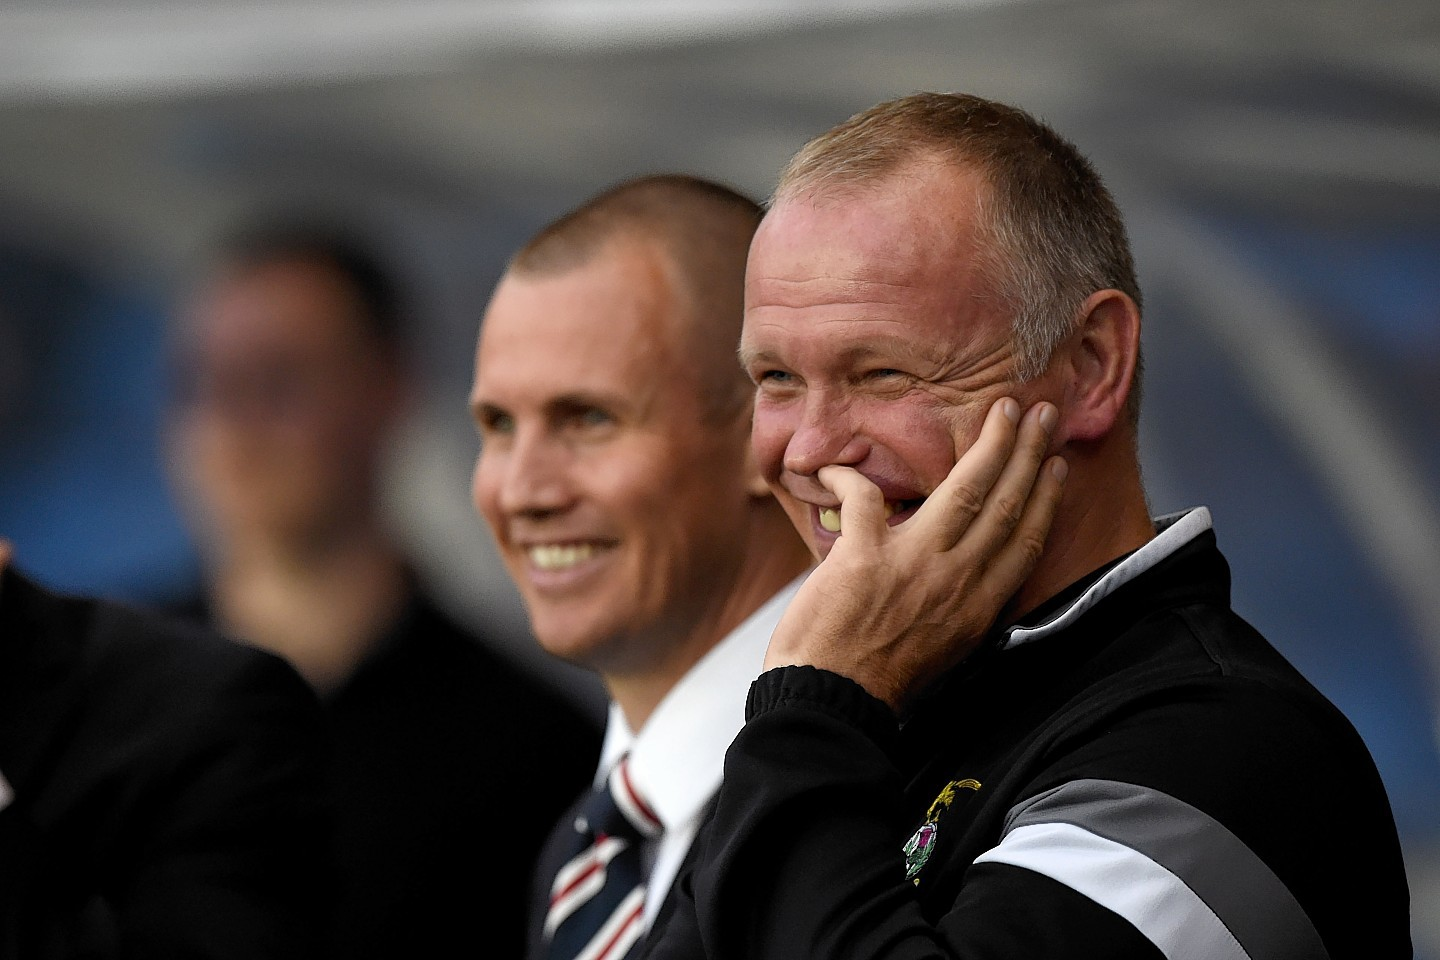 The game started in good spirits with Caley Thistle manager John Hughes sharing a joke with injured Rangers striker Kenny Miller